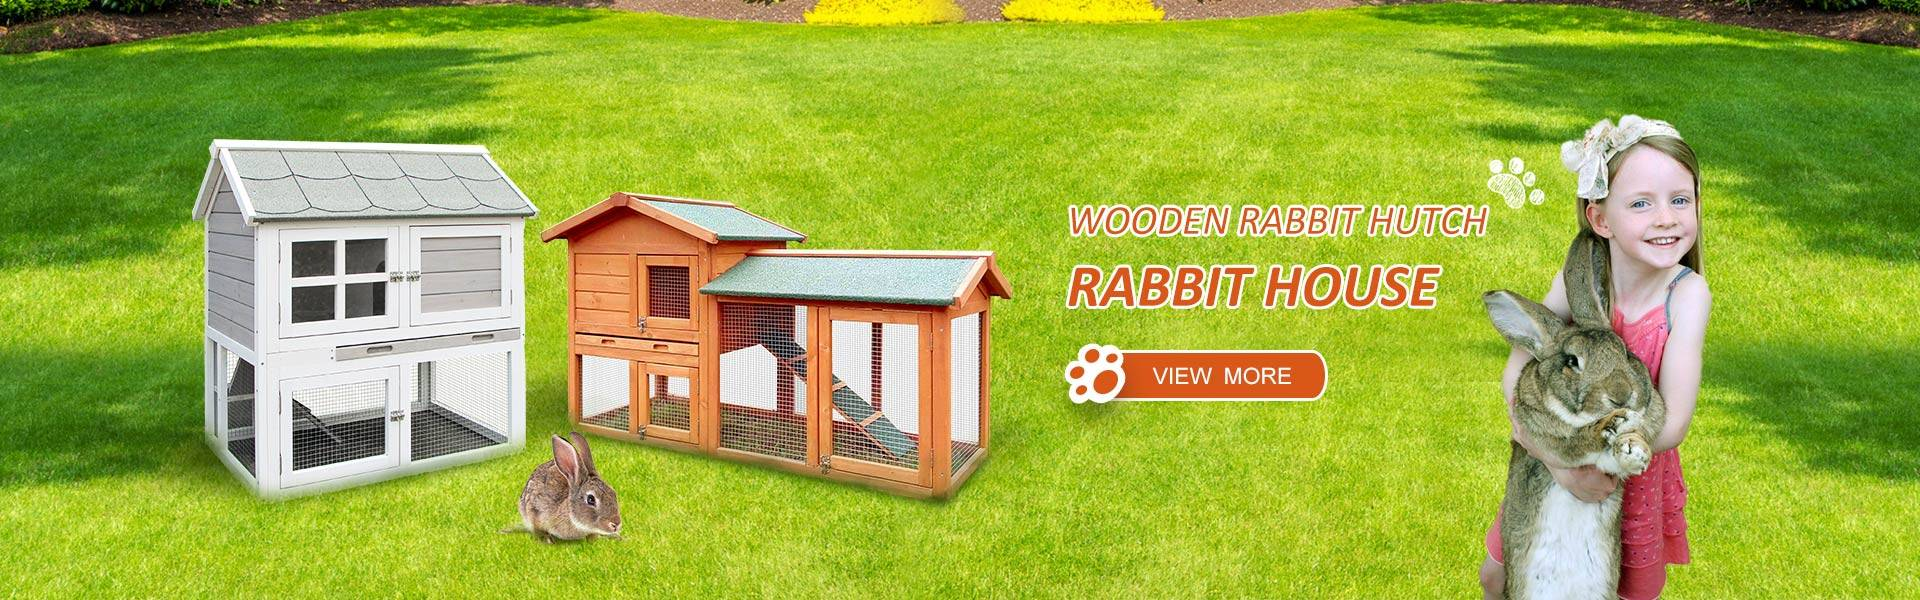 Wooden rabbit hutch/ rabbit house